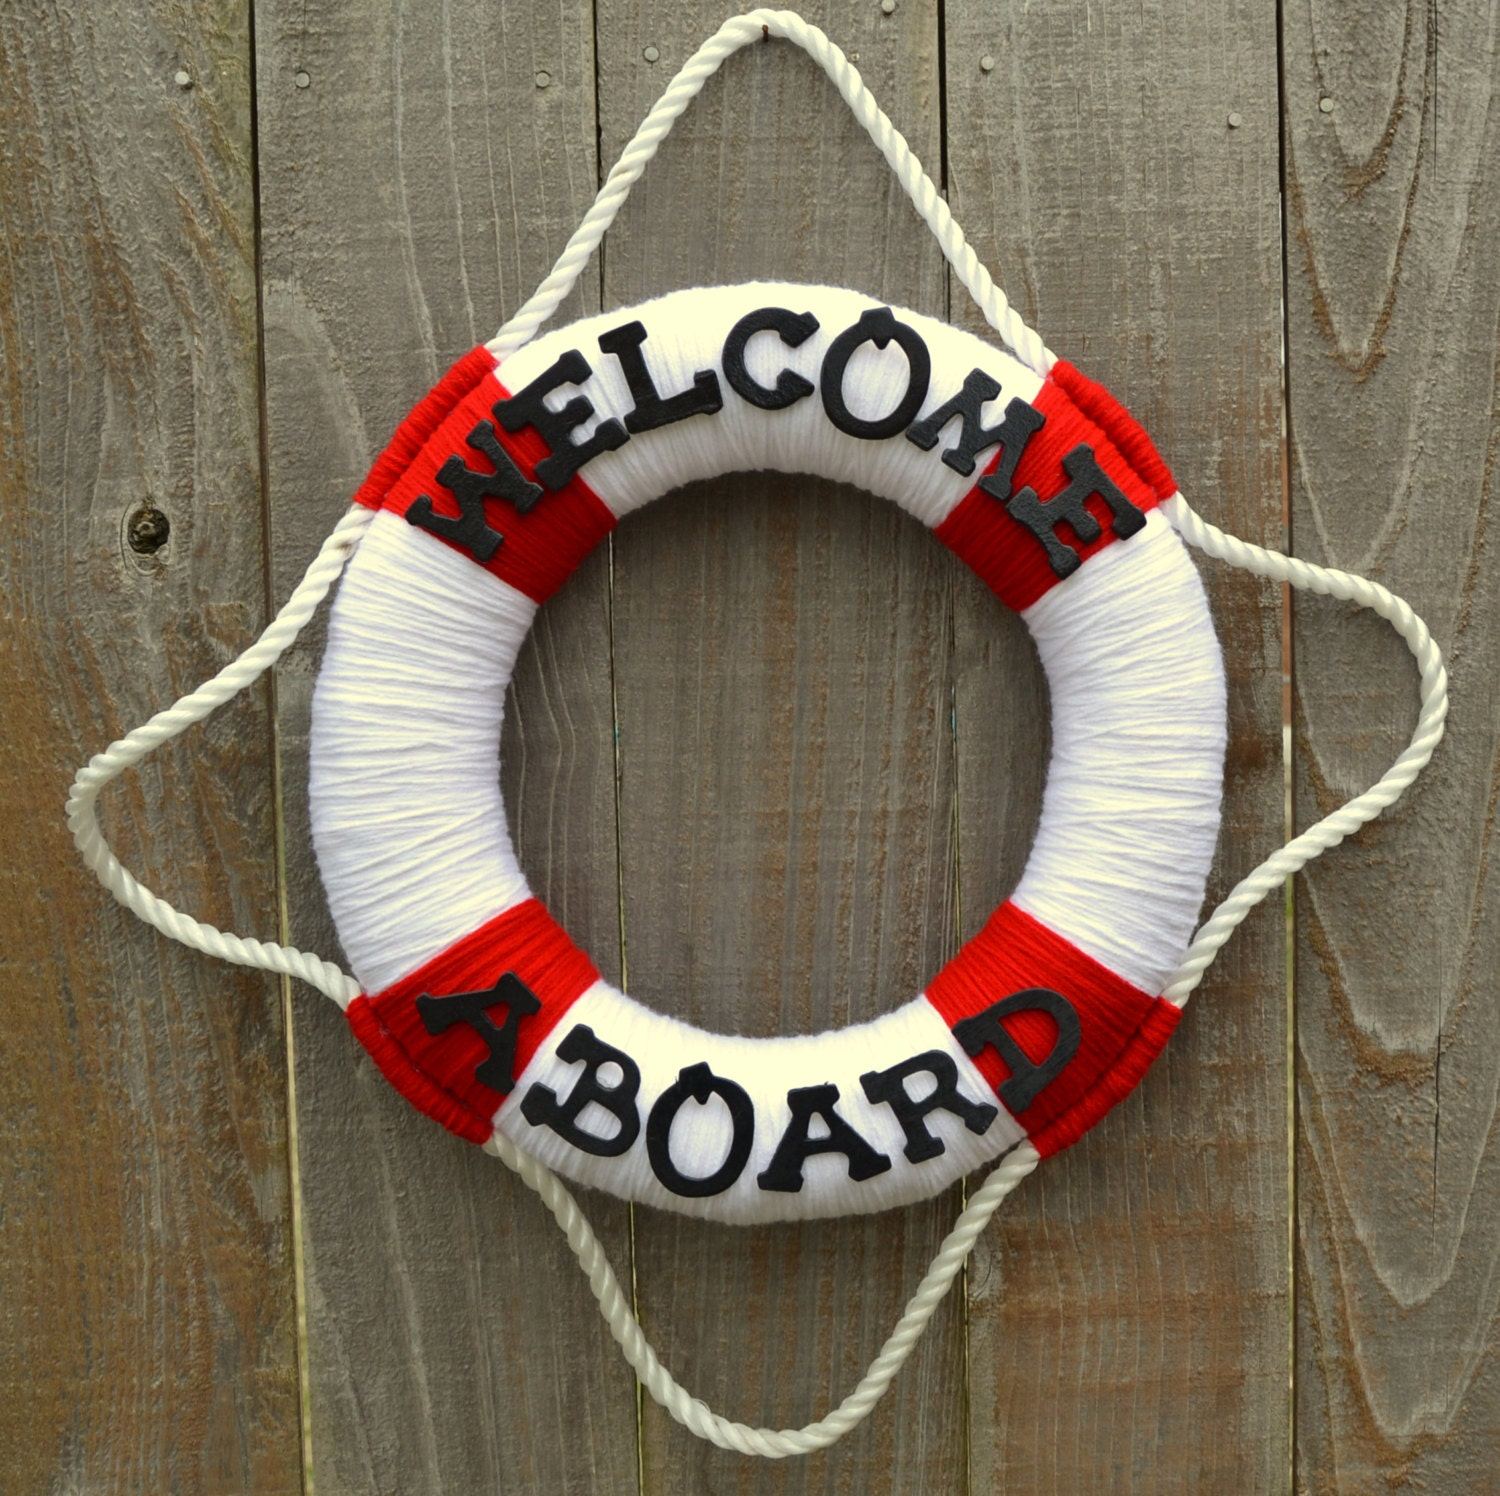 Welcome aboard boat ships life ring clock -  Zoom